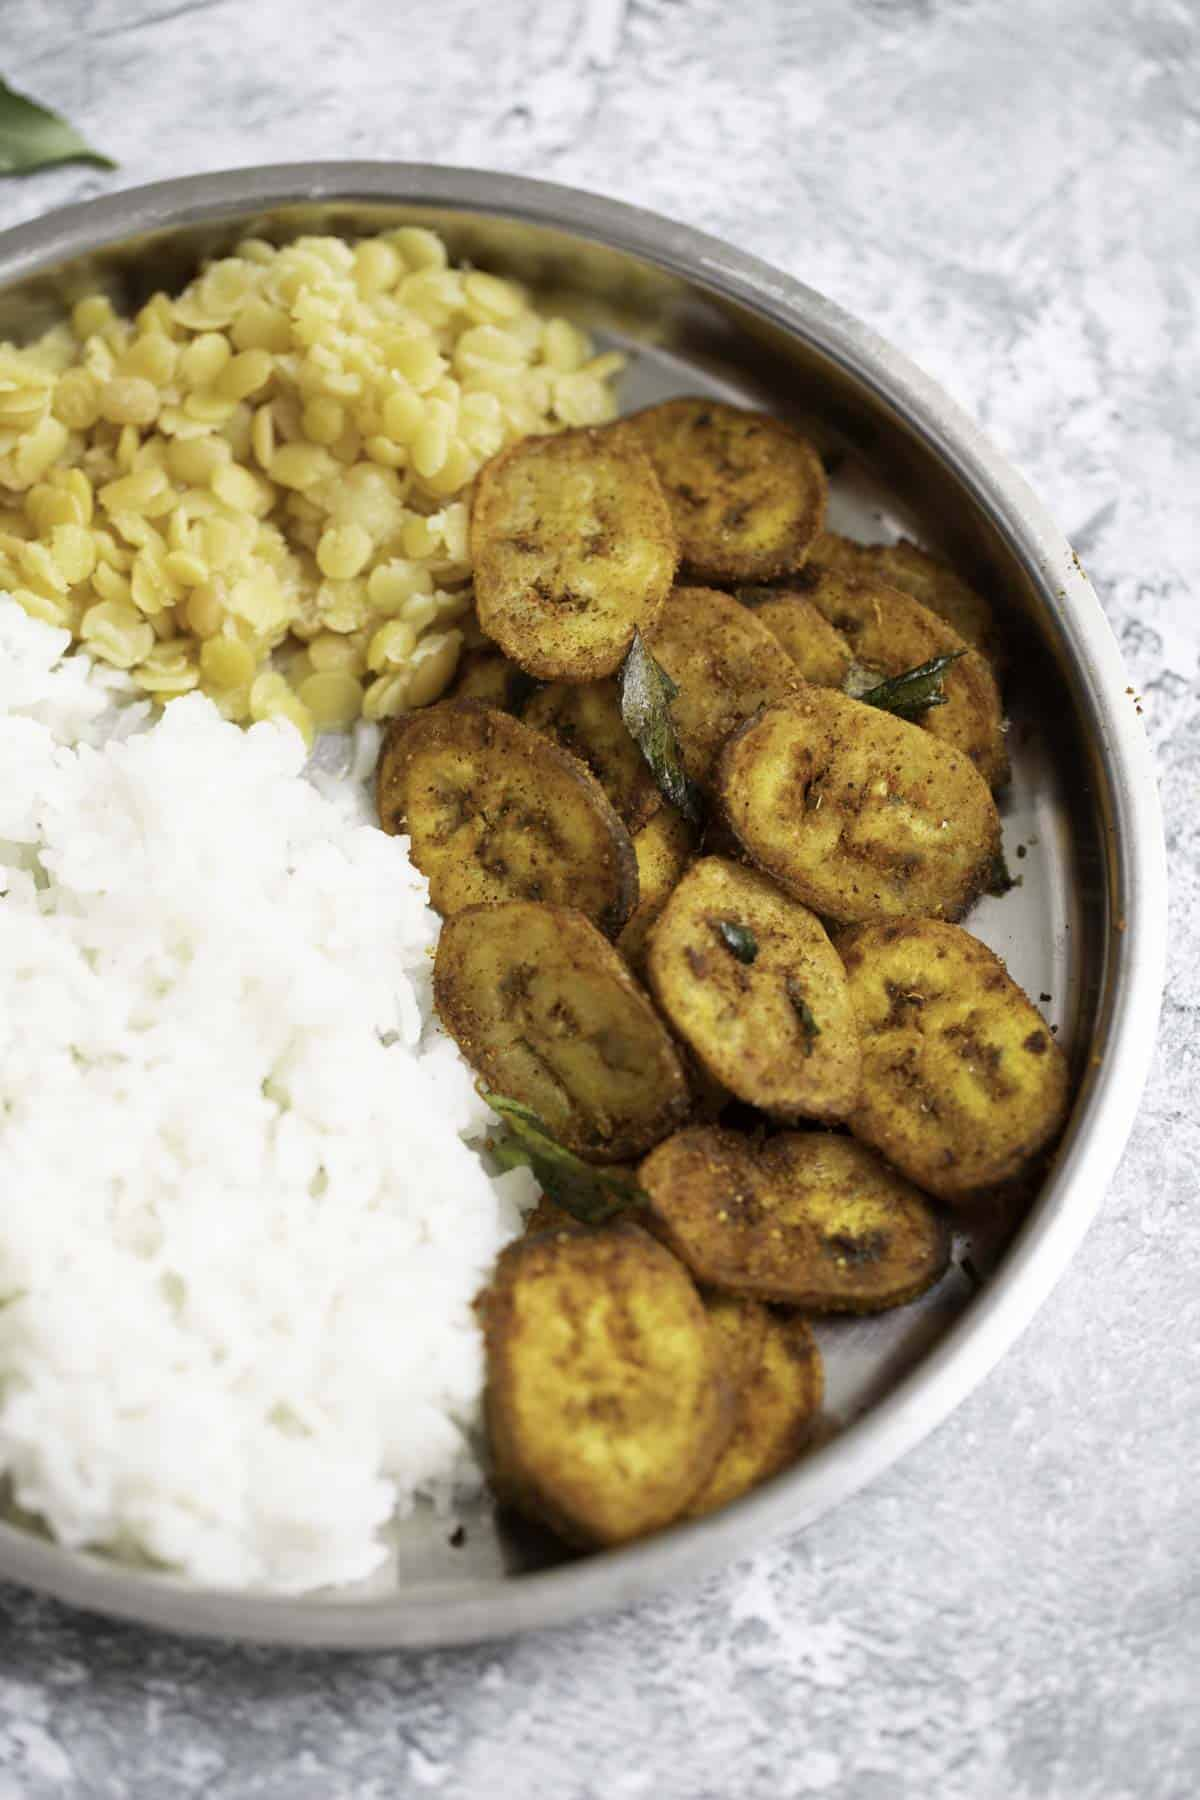 a plate of cooked white rice, dal, raw banana fry